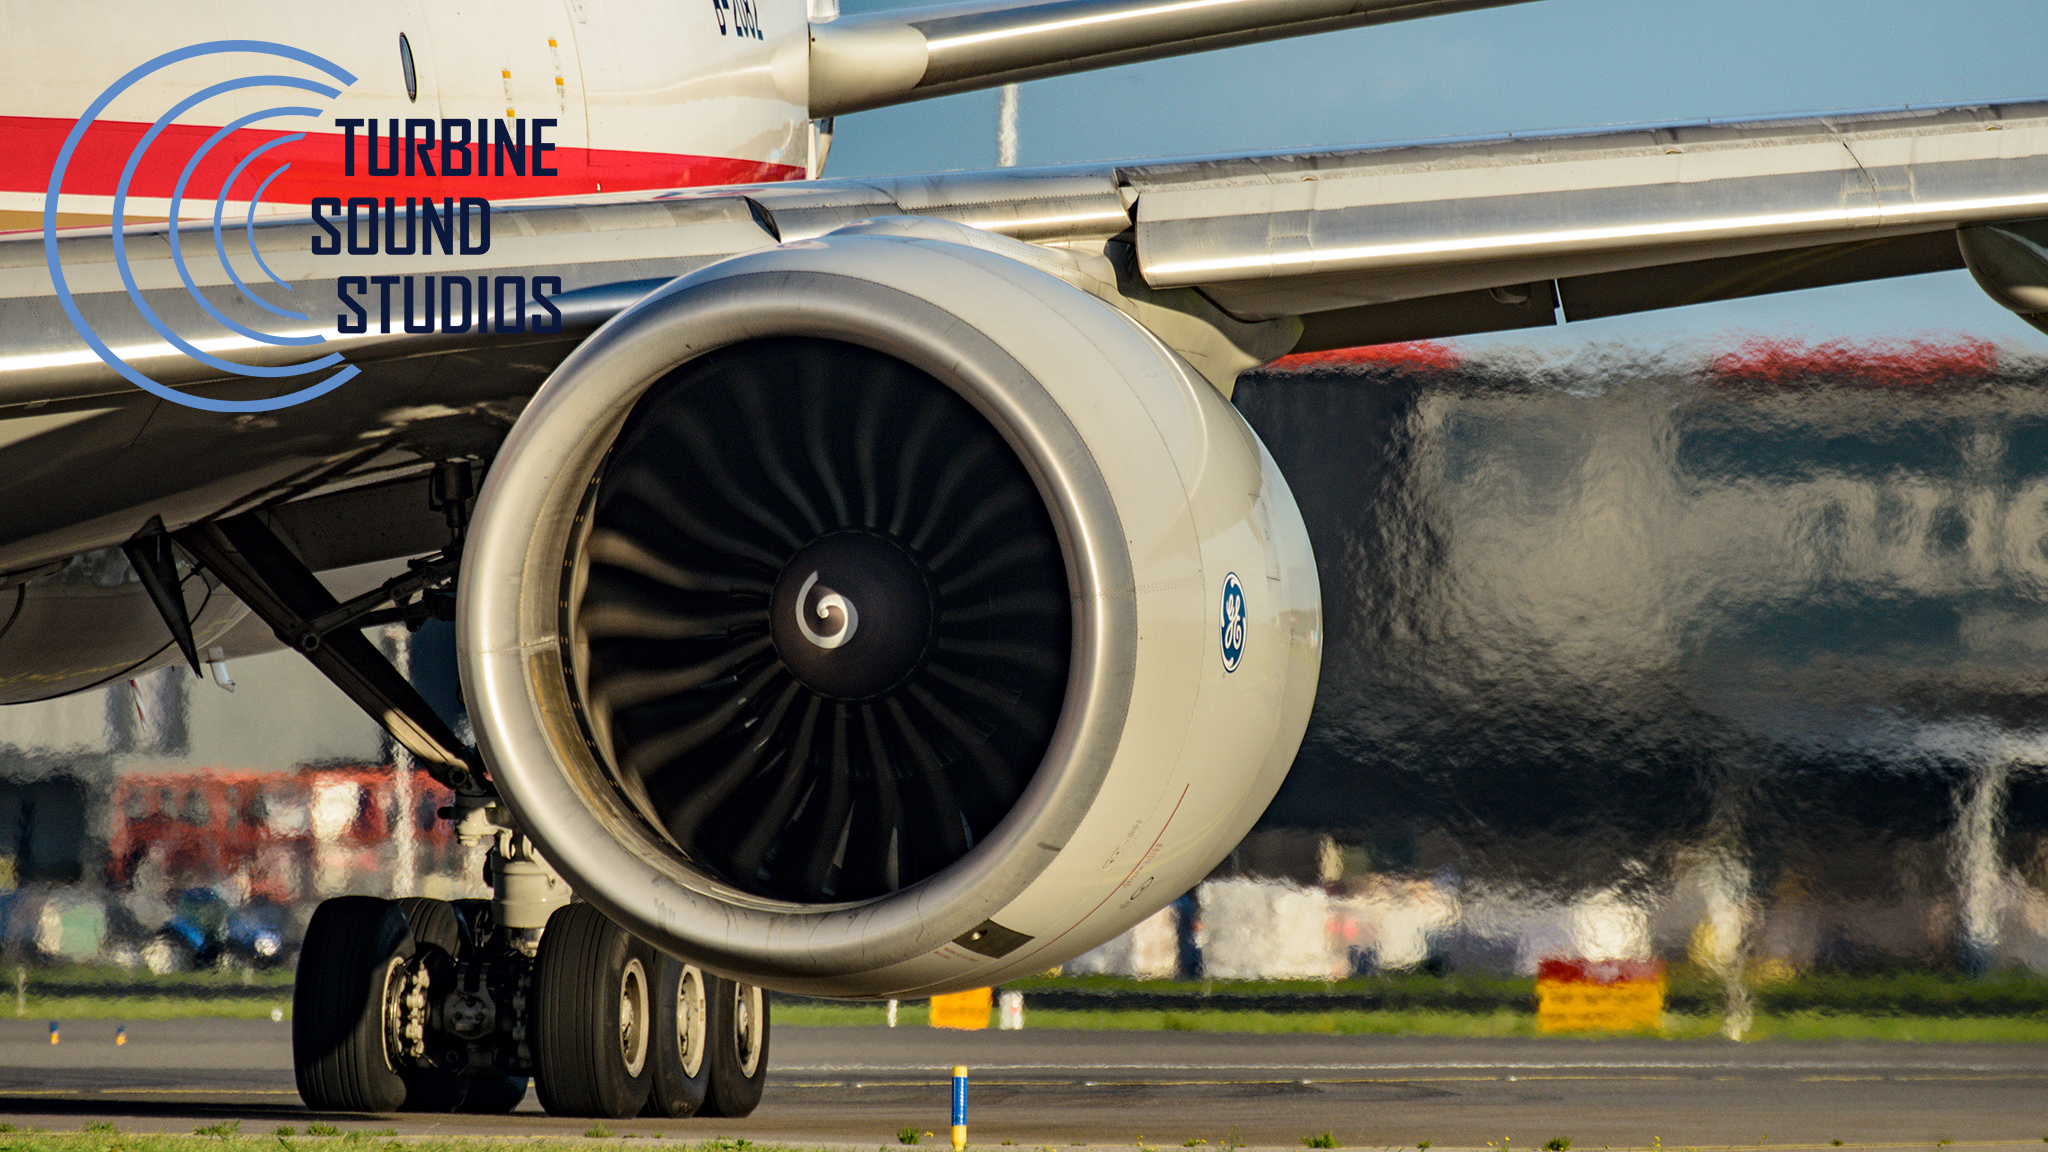 TURBINE SOUND STUDIOS - BOEING 777-GE90-115B SOUNDPACK FOR FS2004